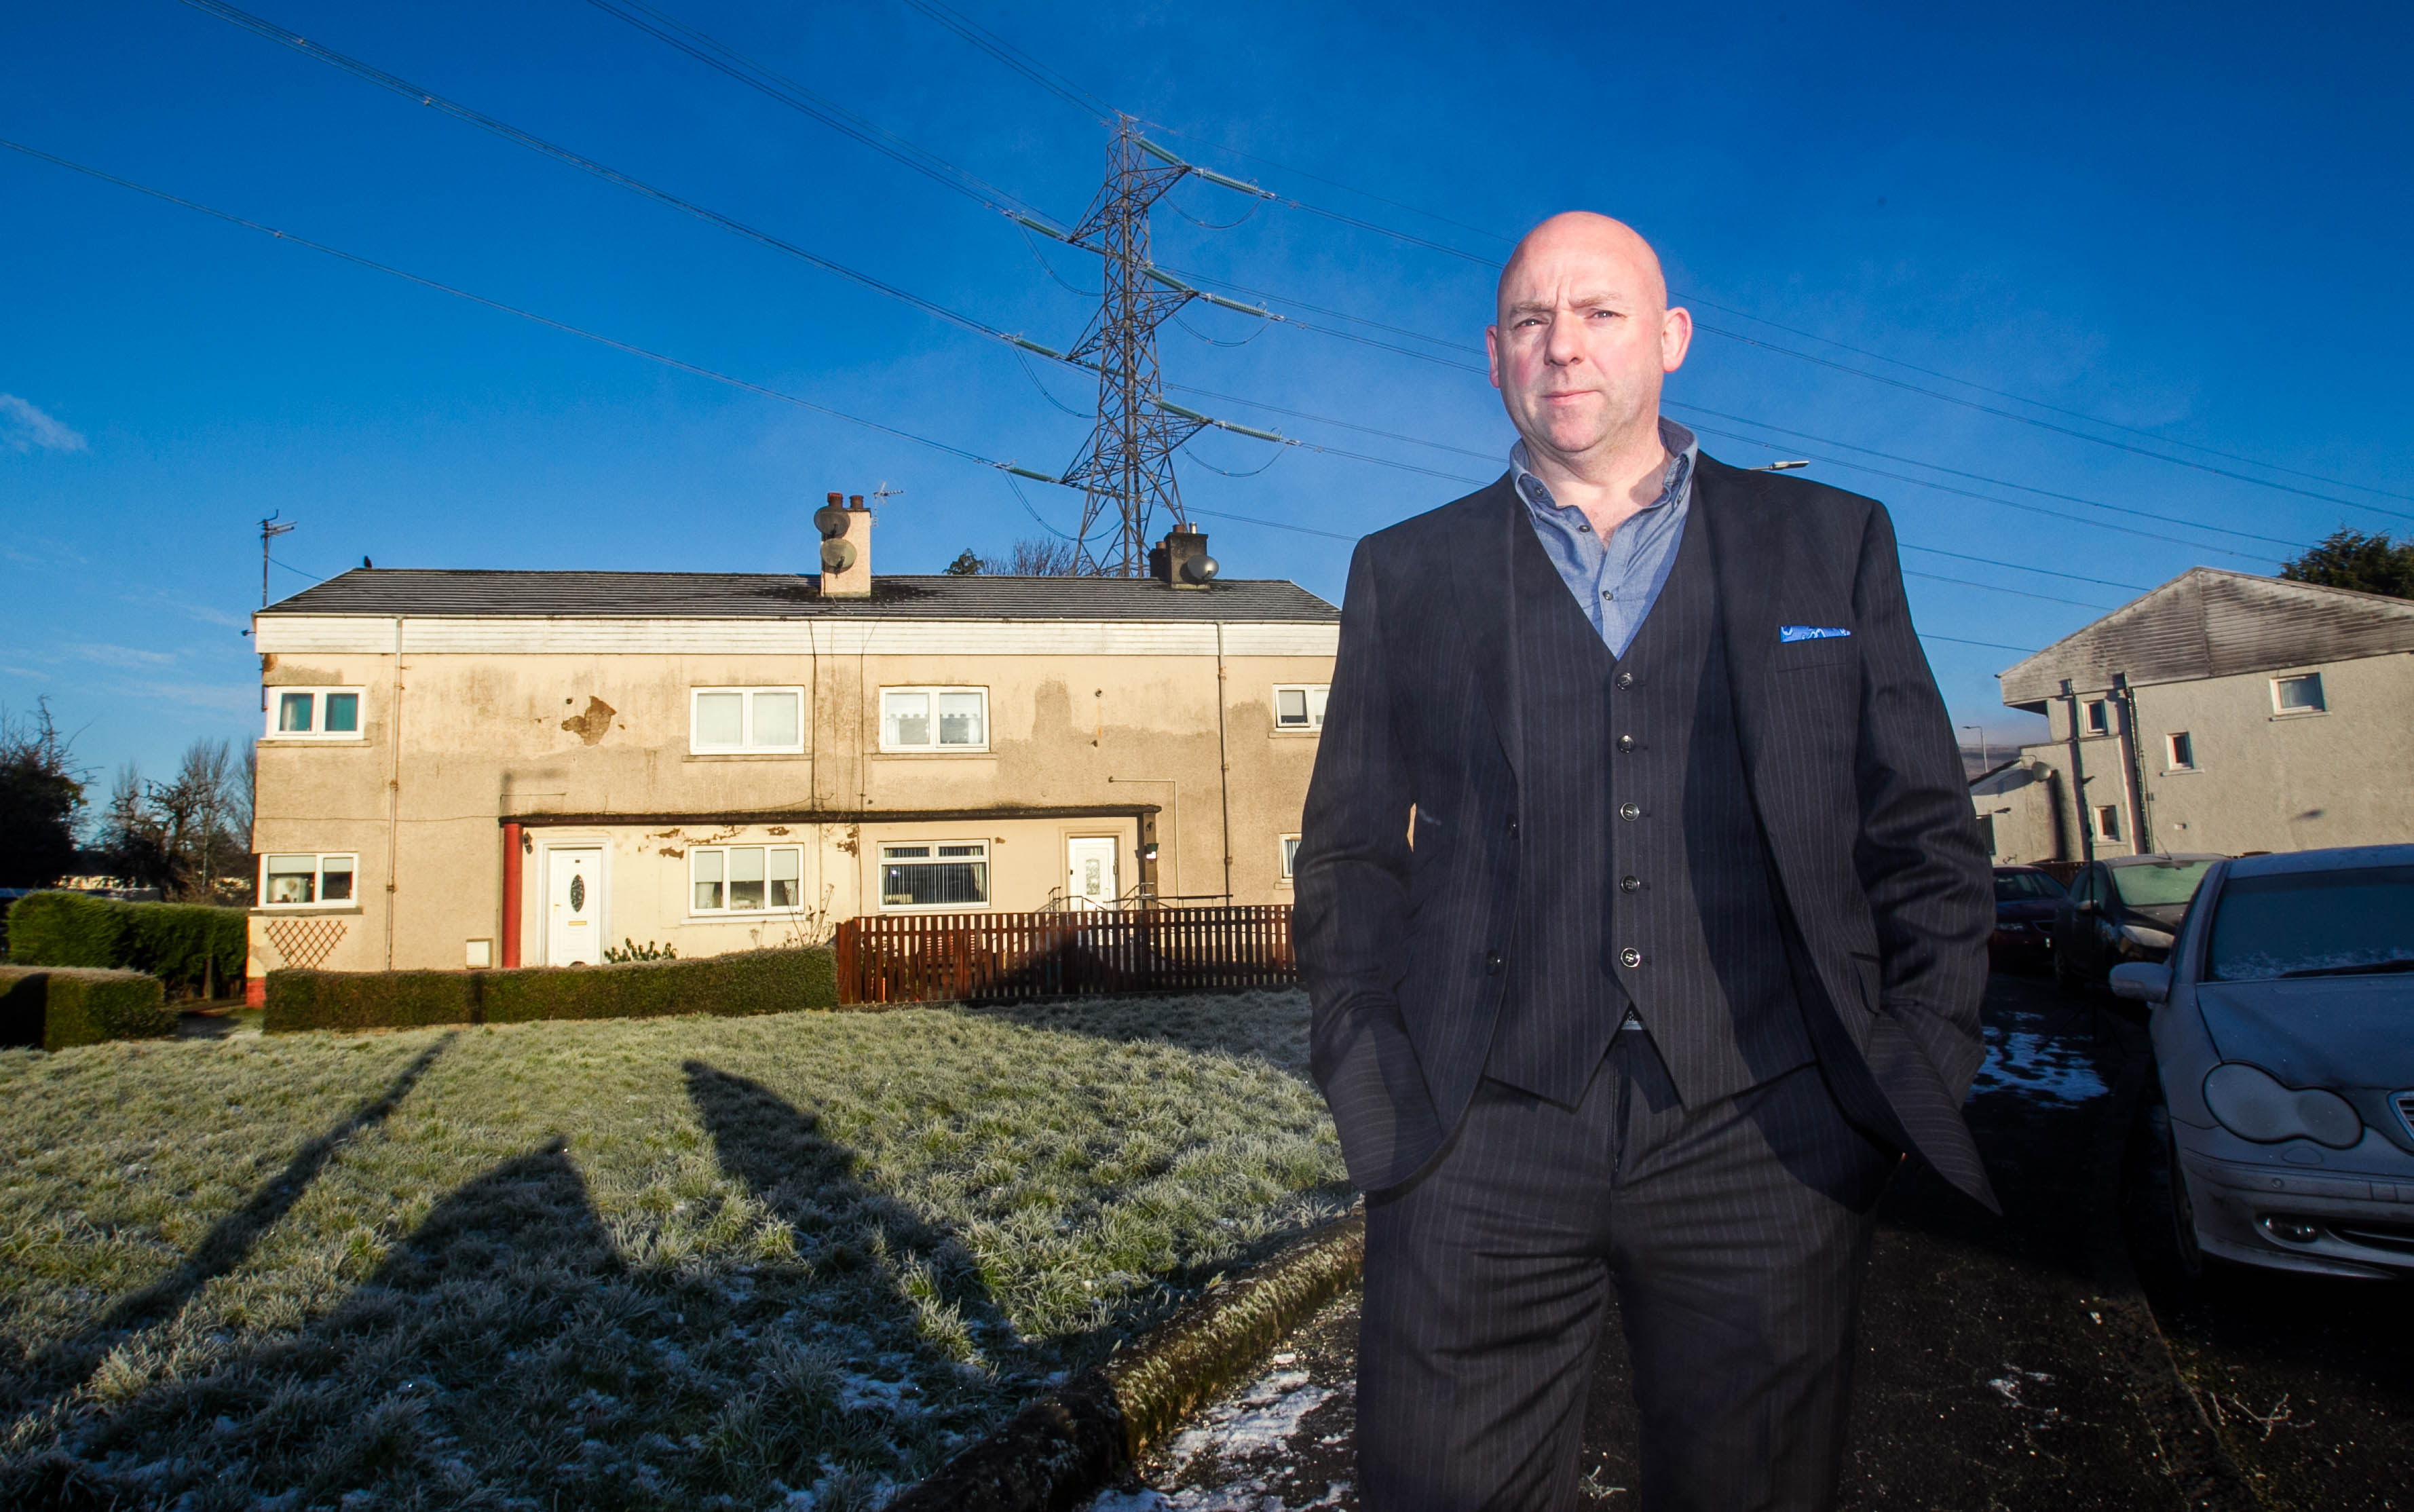 Graham Clark had to wait a long time for compensation for having an electricity pylon in his back garden that he already moved. Thanks to Raw Deal we got his money.